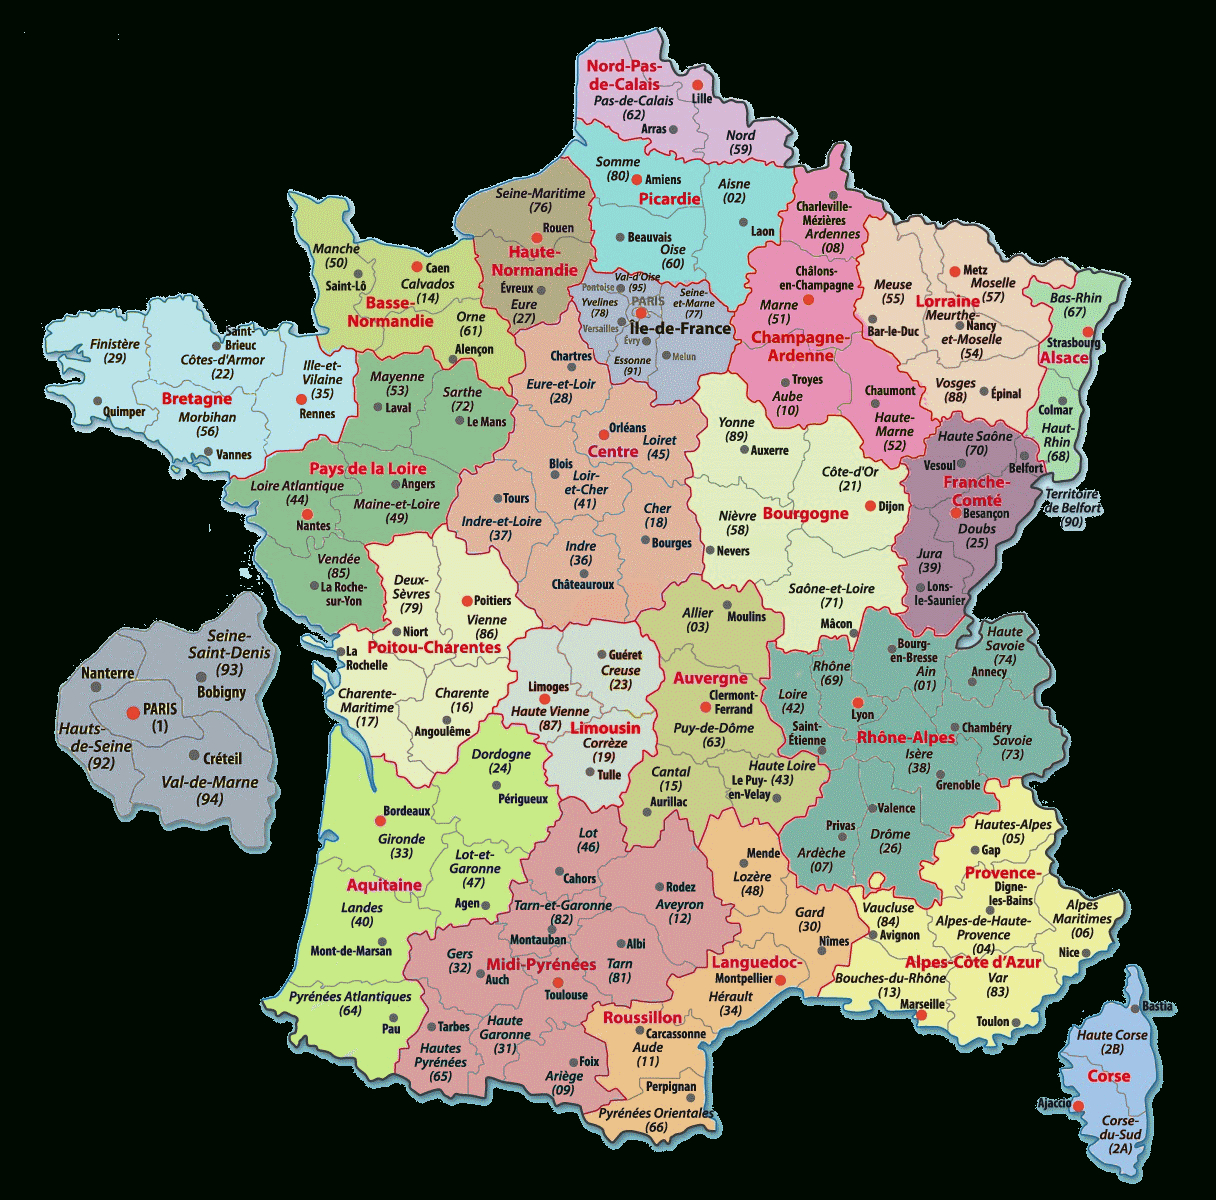 Carte De France Departements : Carte Des Départements De France concernant Carte Departement 13